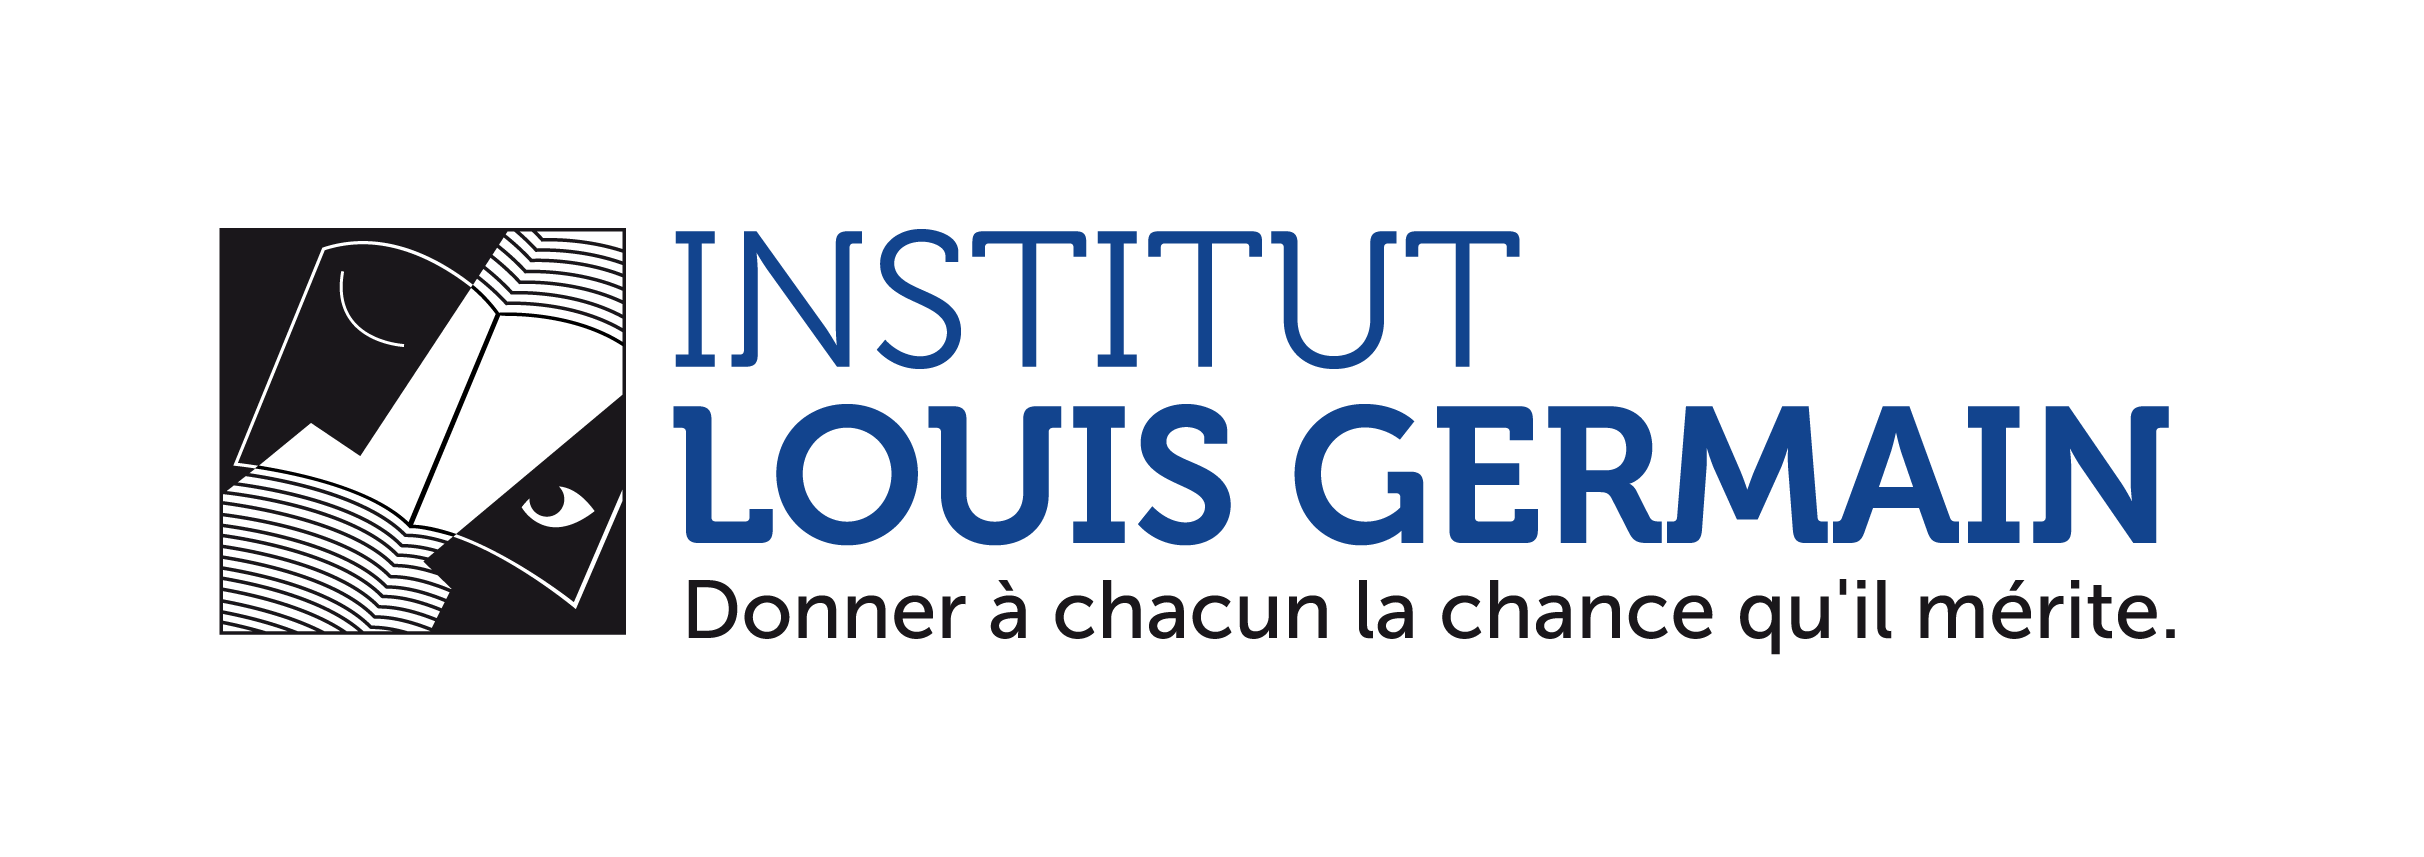 Association - Institut Louis Germain